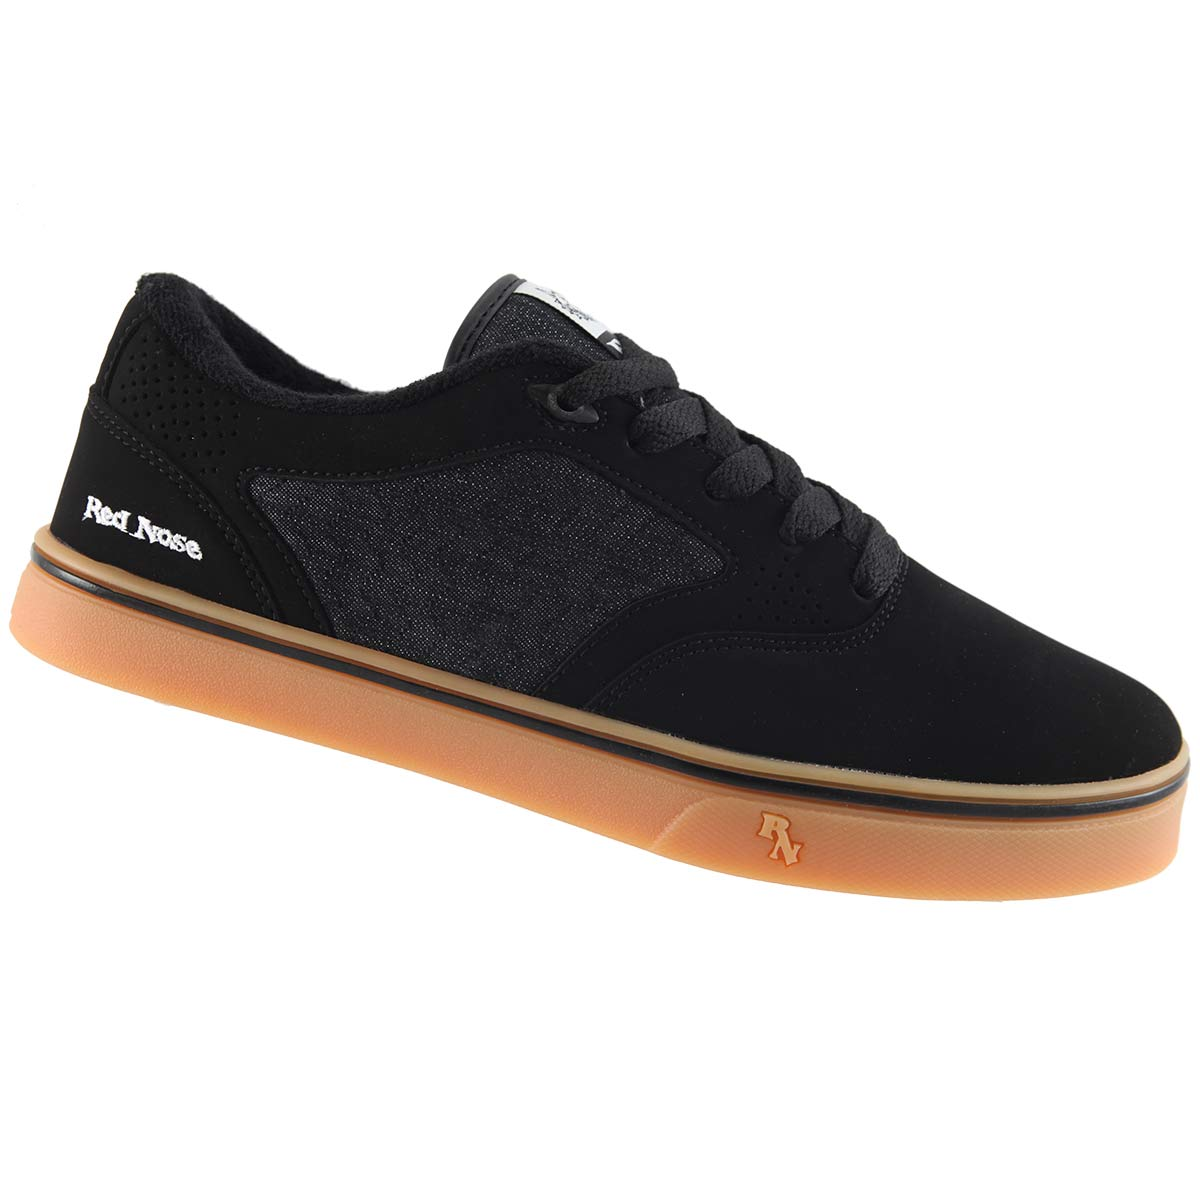 Tênis Red Nose Royal Skate Skatista Original RNSV08